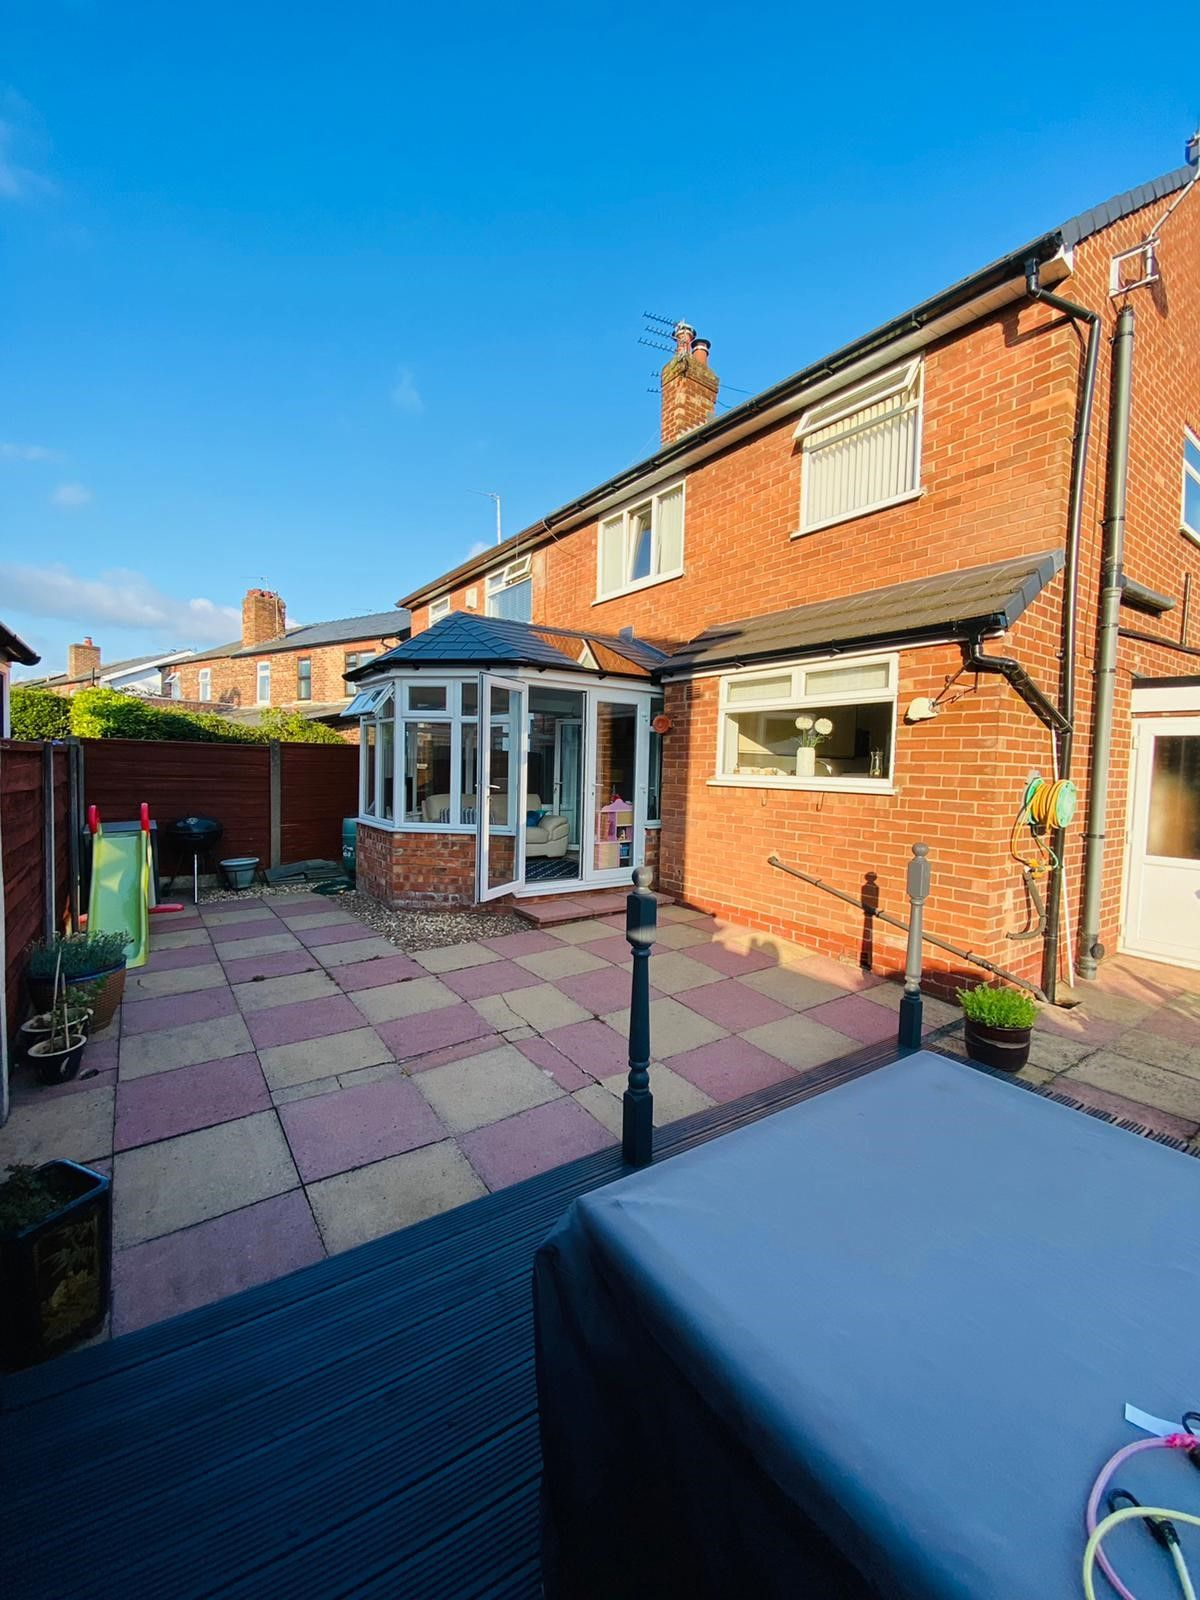 3 bedroom semi-detached house Under Offer in Manchester - Photograph 27.